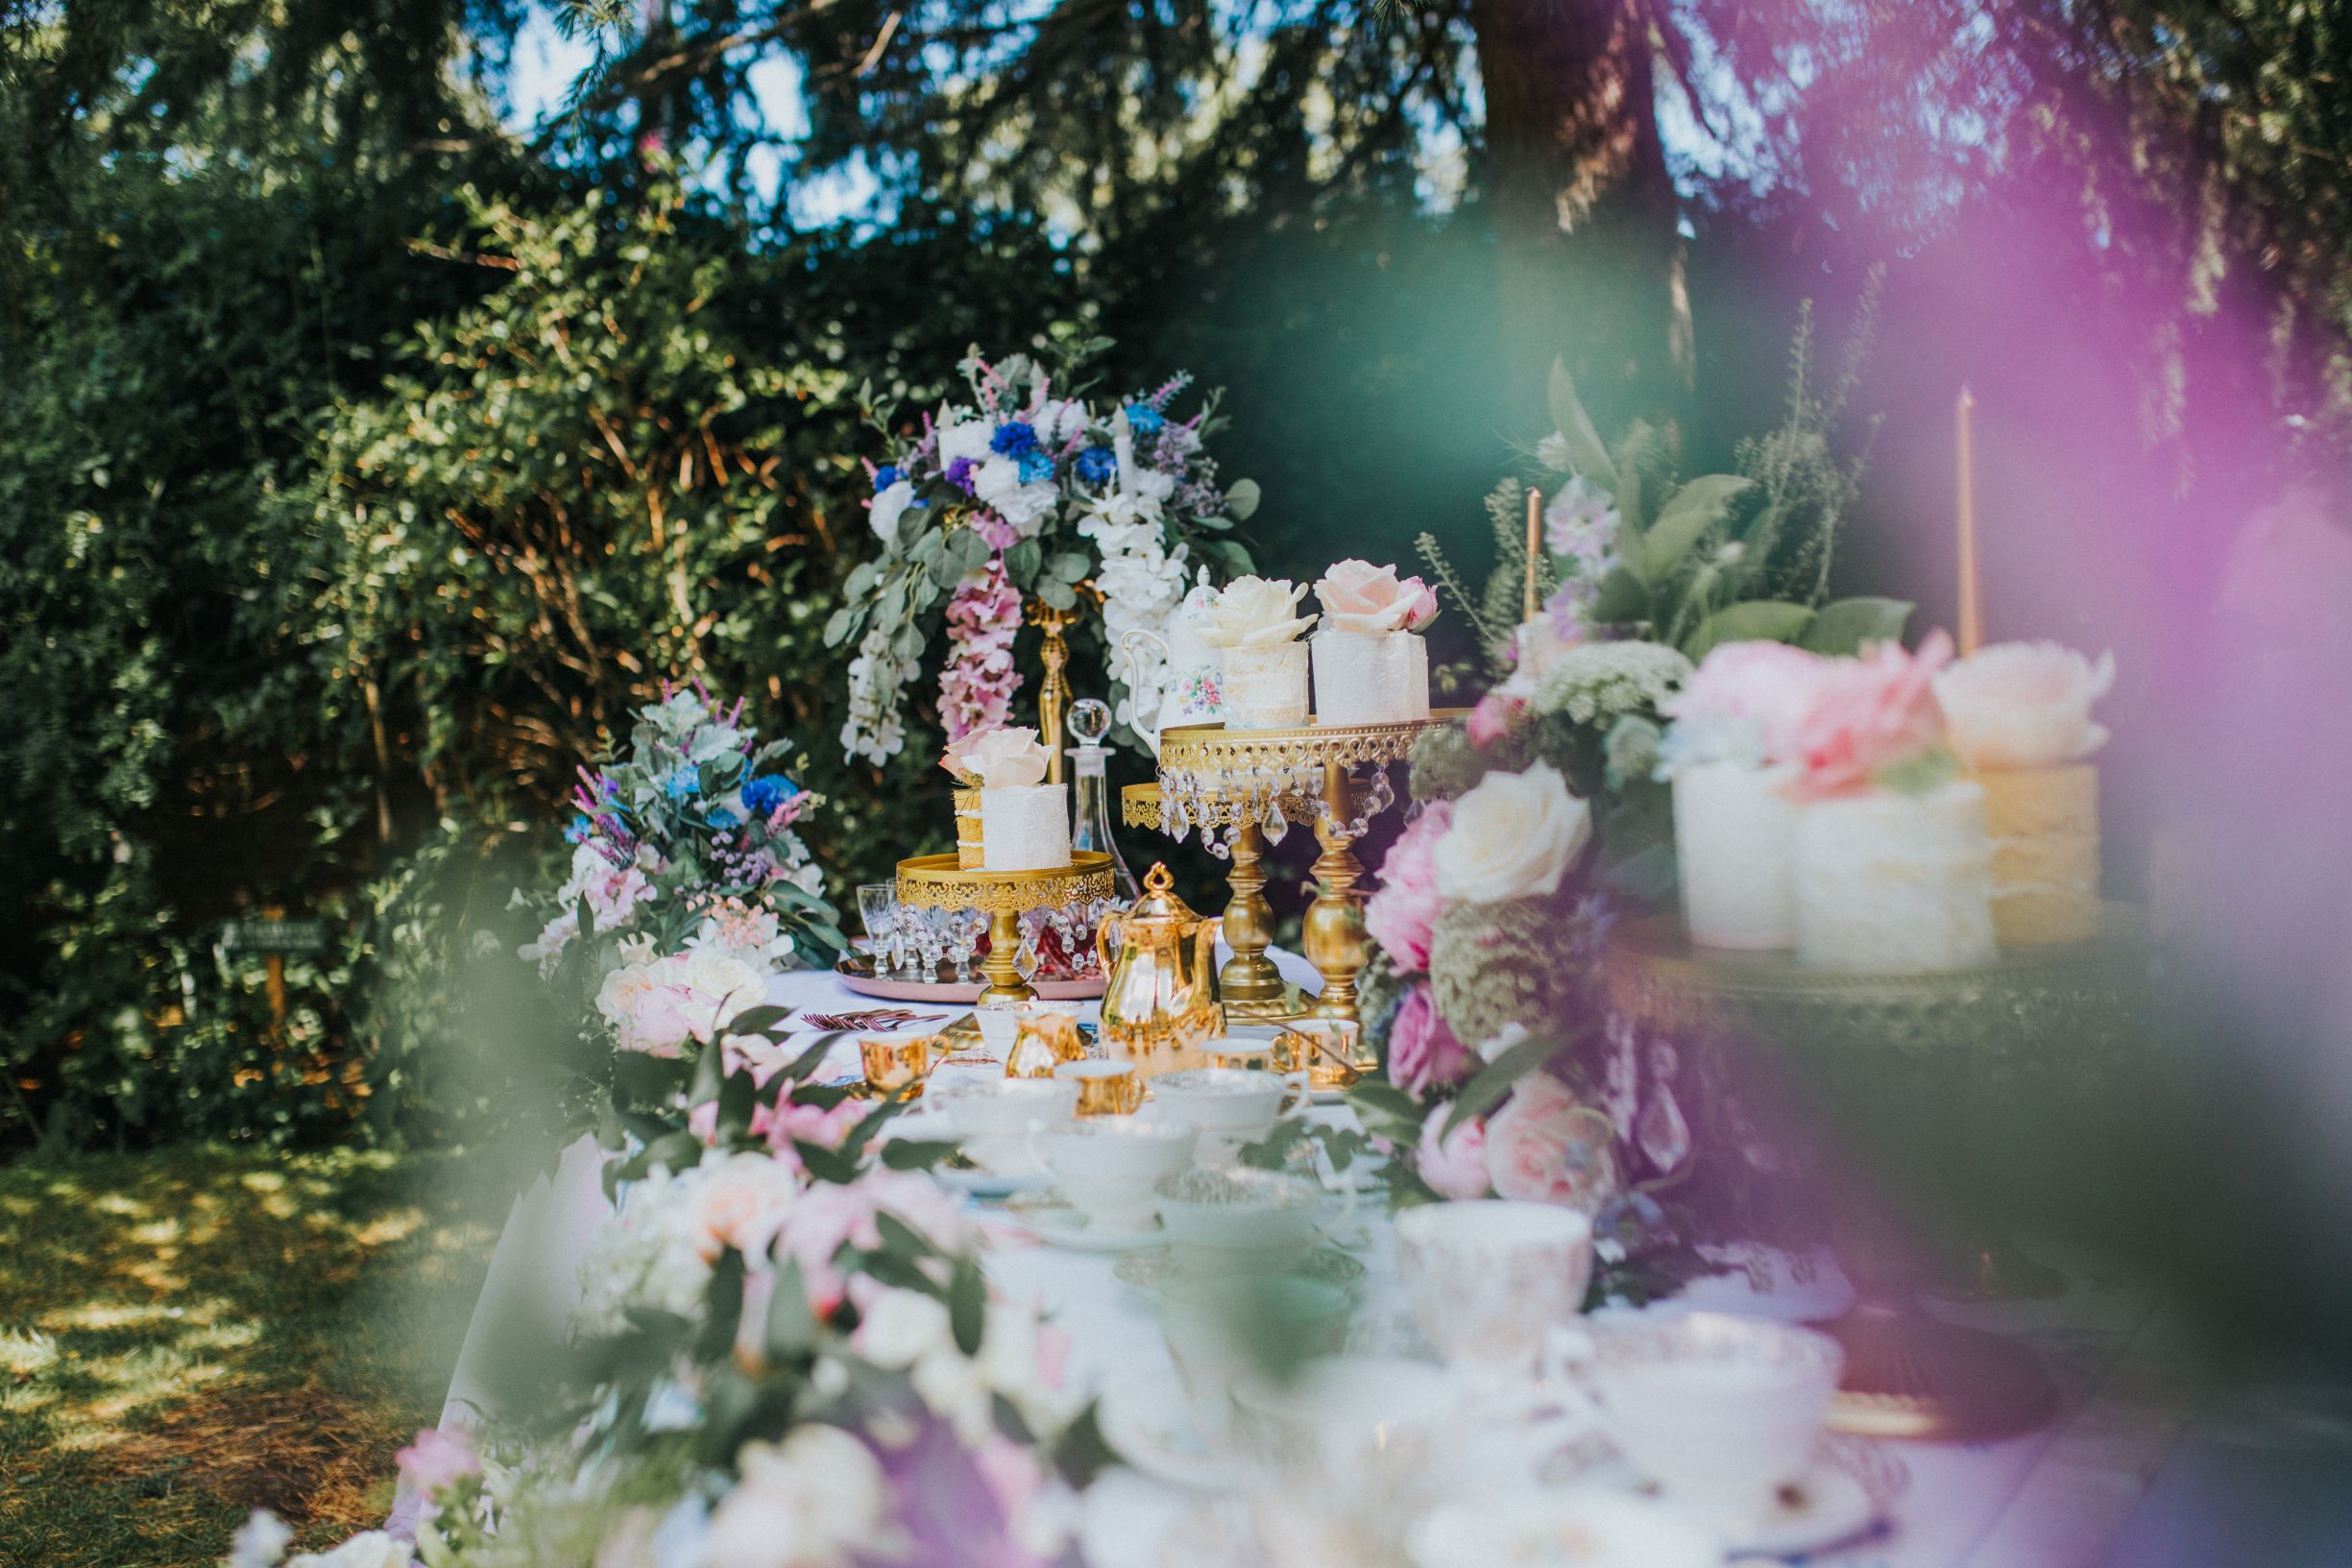 Whimsical wedding- Laura Beresford Photography- unconventional wedding- alternative wedding- vintage wedding- wedding tea party